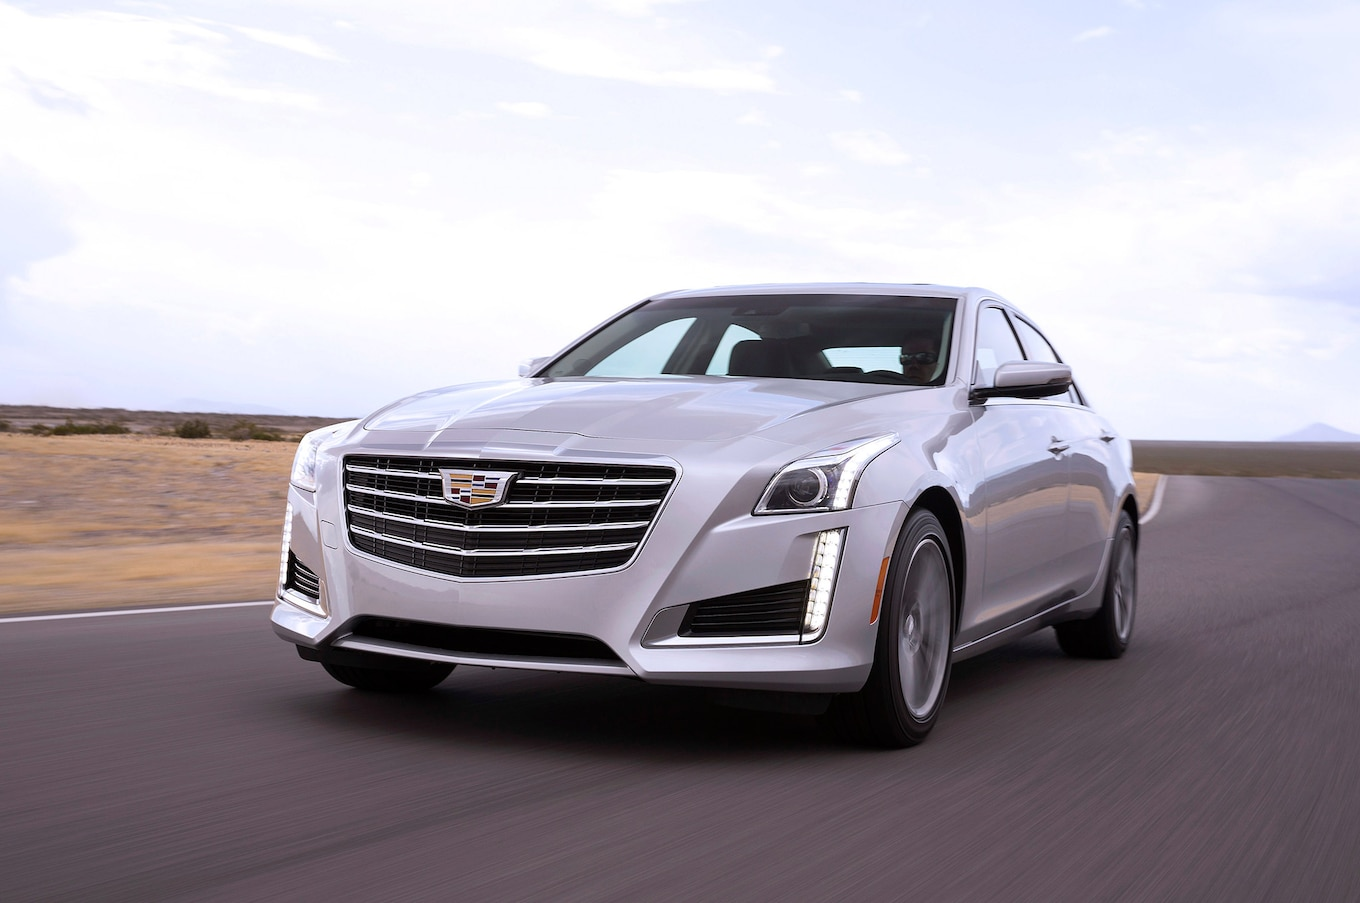 hight resolution of 2017 cadillac cts reviews and rating motor trend 2 11